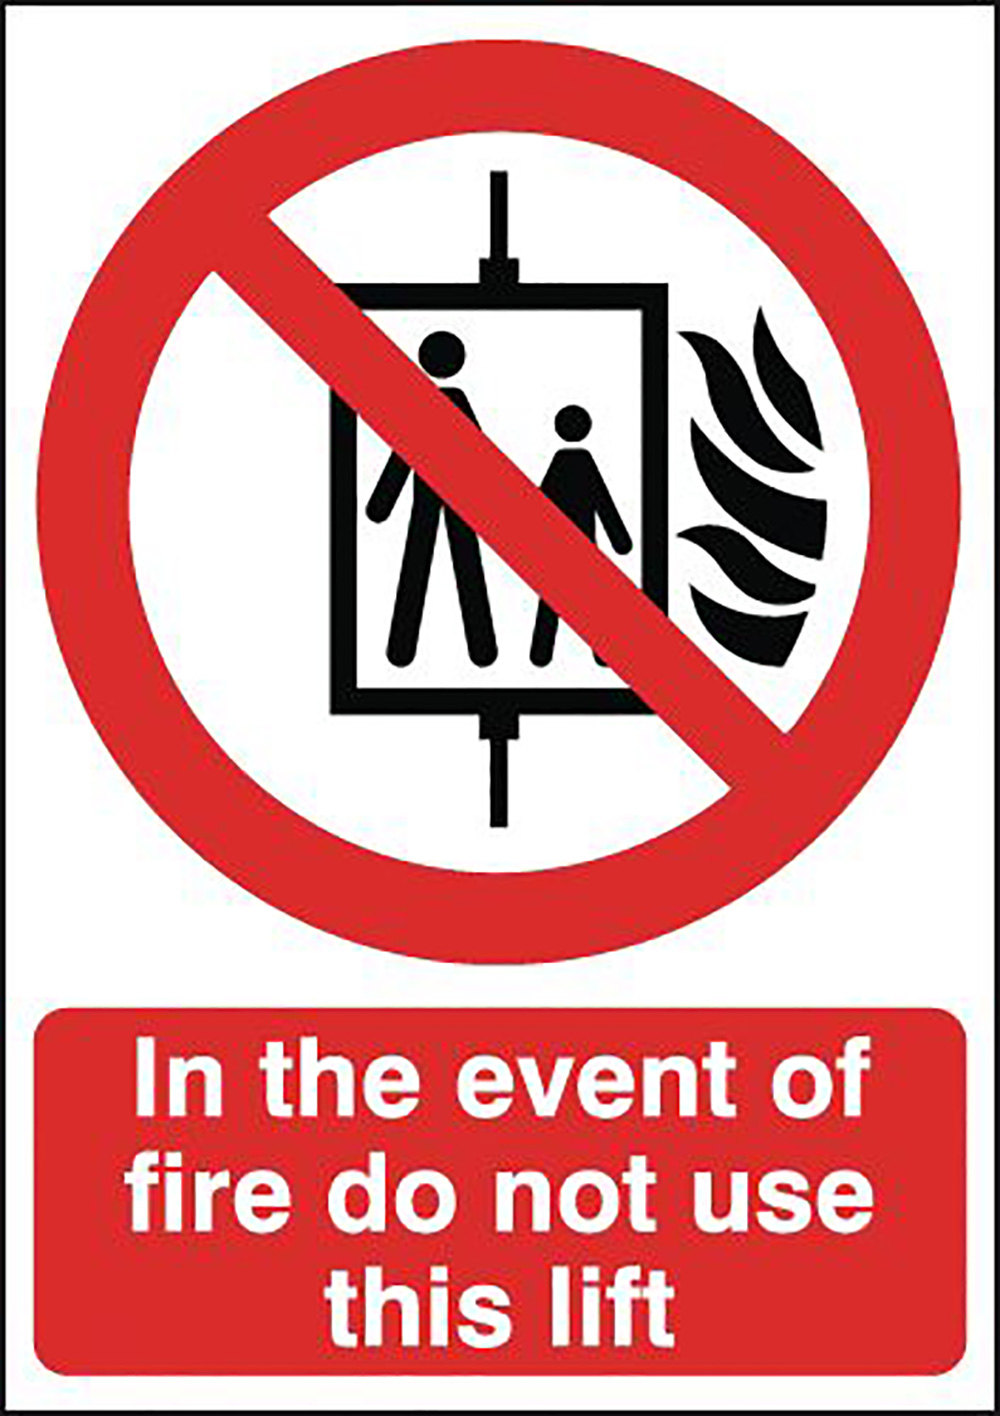 In The Event Of Fire Do Not Use This Lift  210x148mm Self Adhesive Vinyl Safety Sign